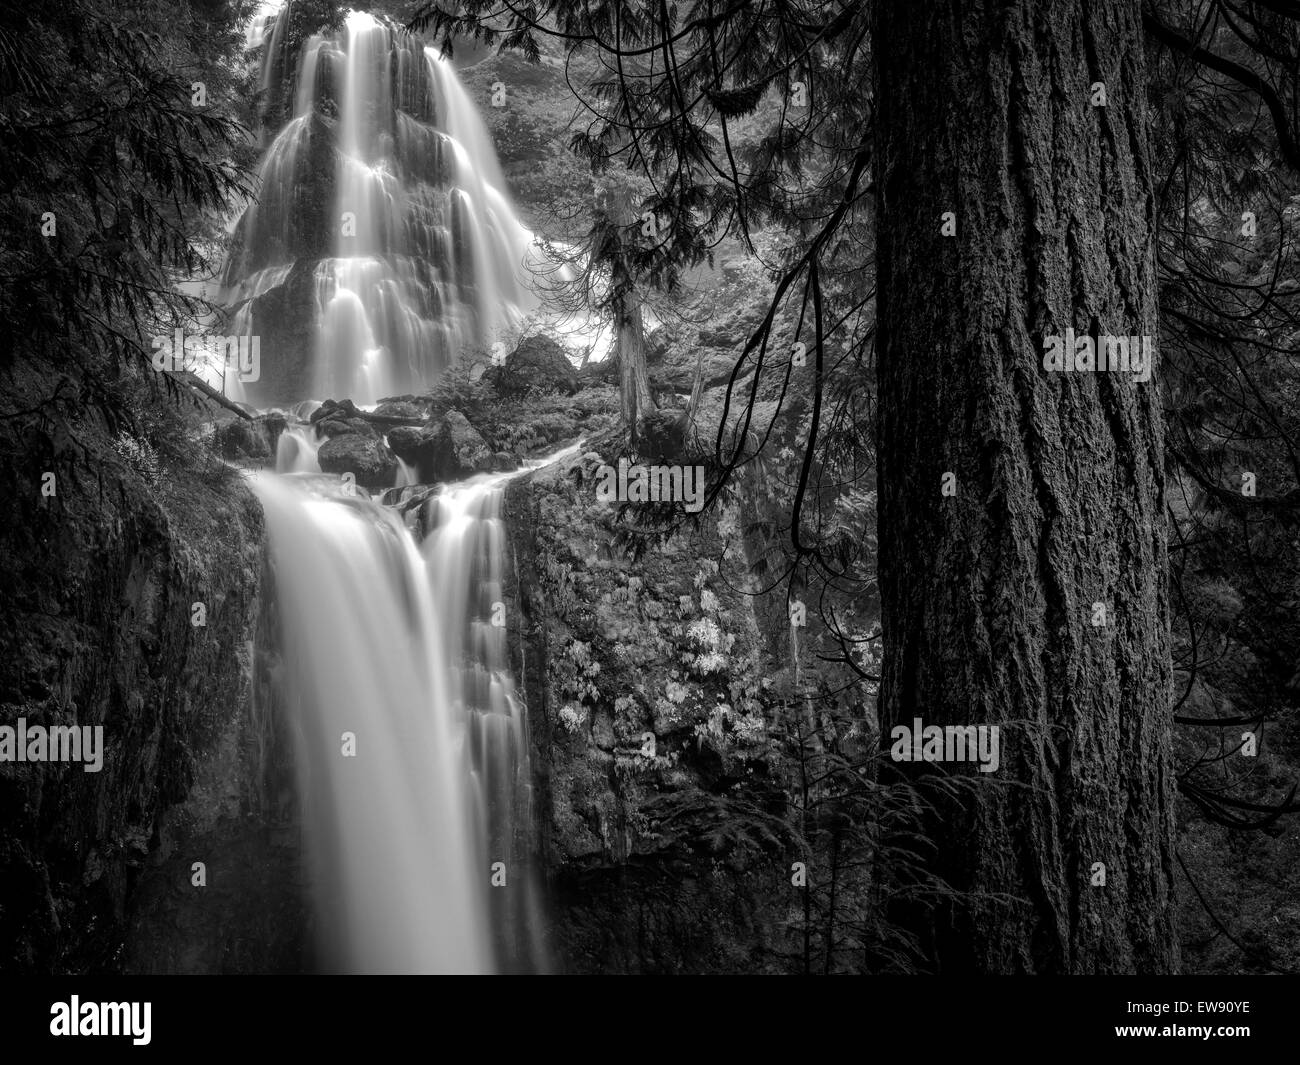 Falls Creek Falls, Washington. Imagen De Stock